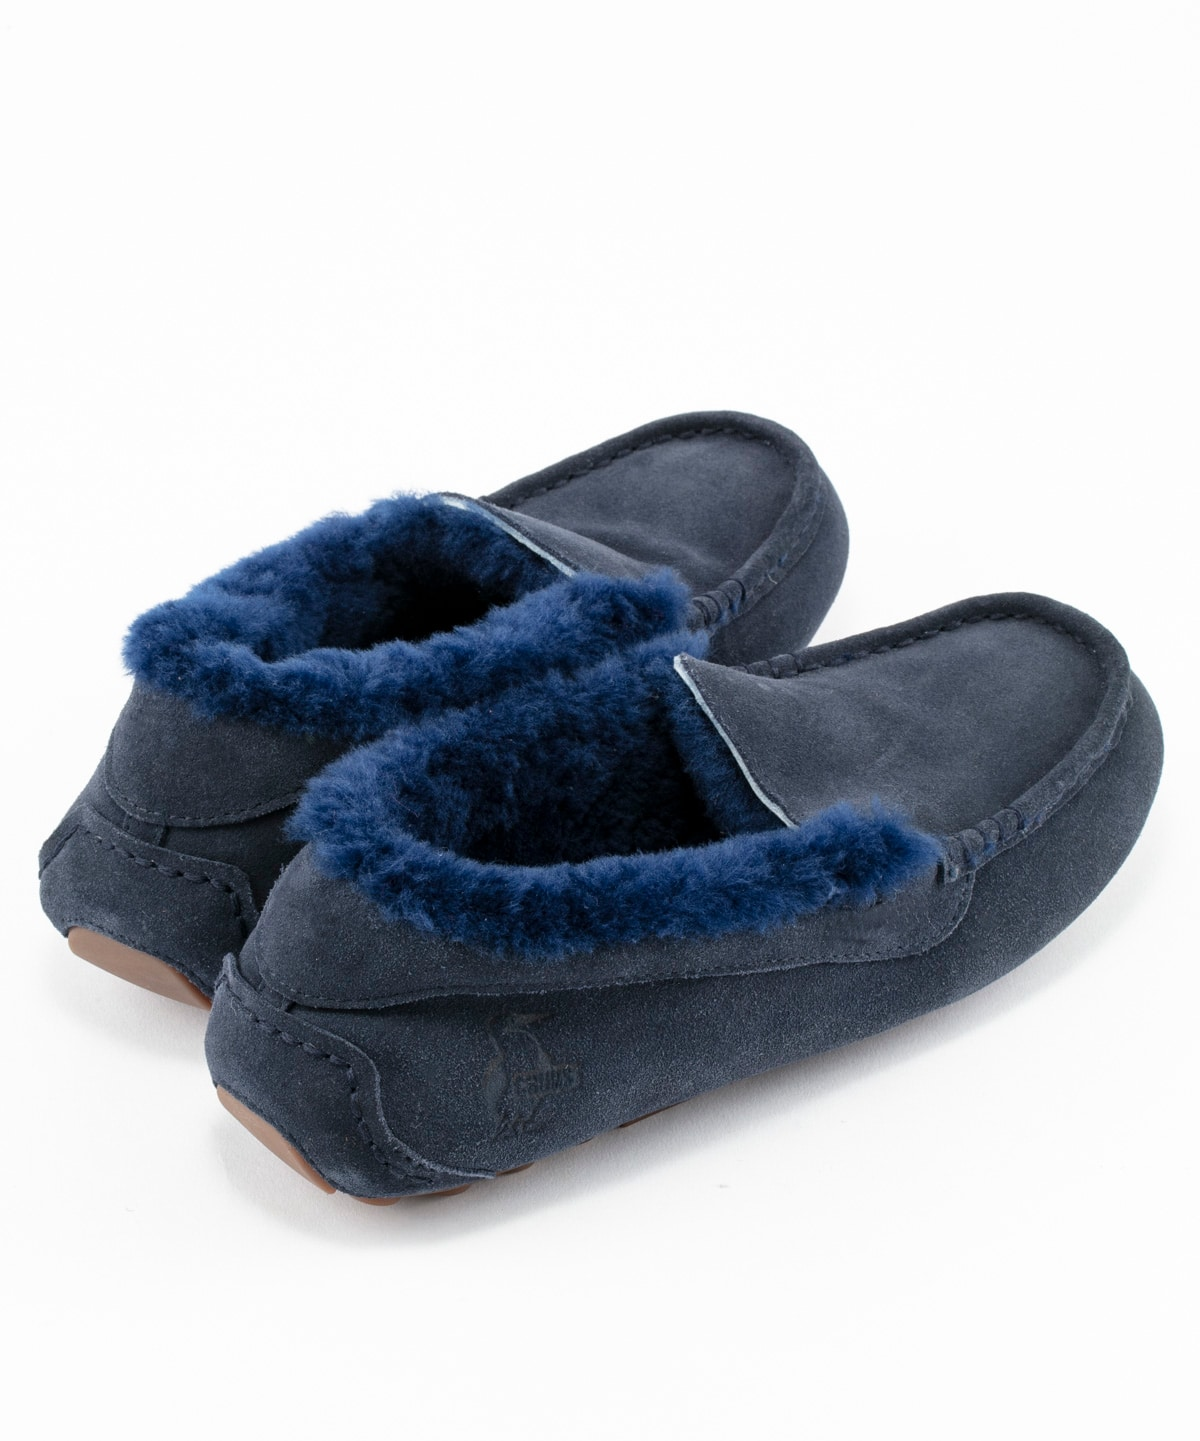 Booby Mouton Moccasin Men's(ブービームートンモカシンメンズ(シューズ))